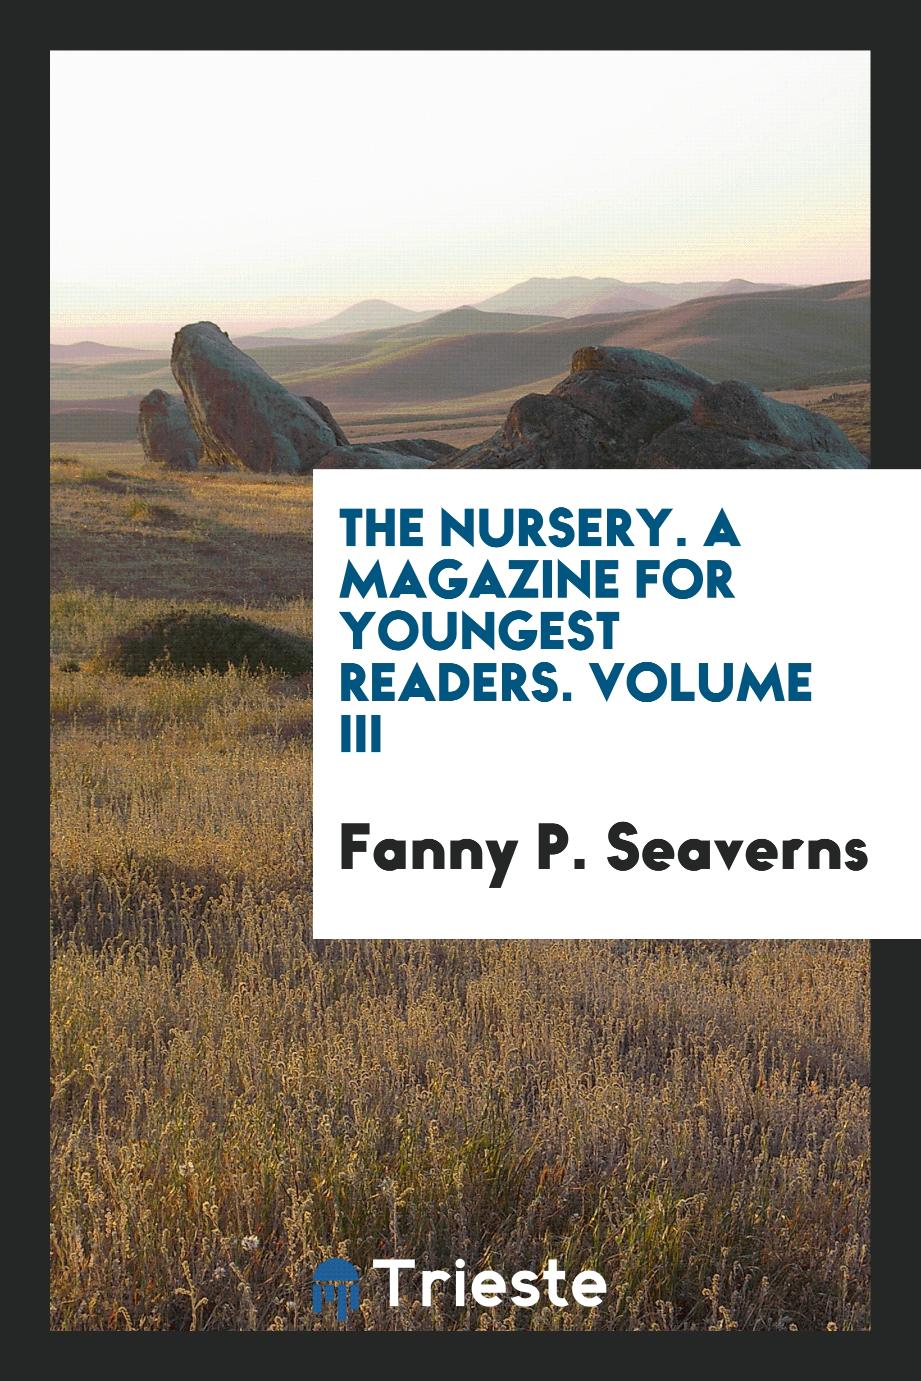 The Nursery. A Magazine for Youngest Readers. Volume III